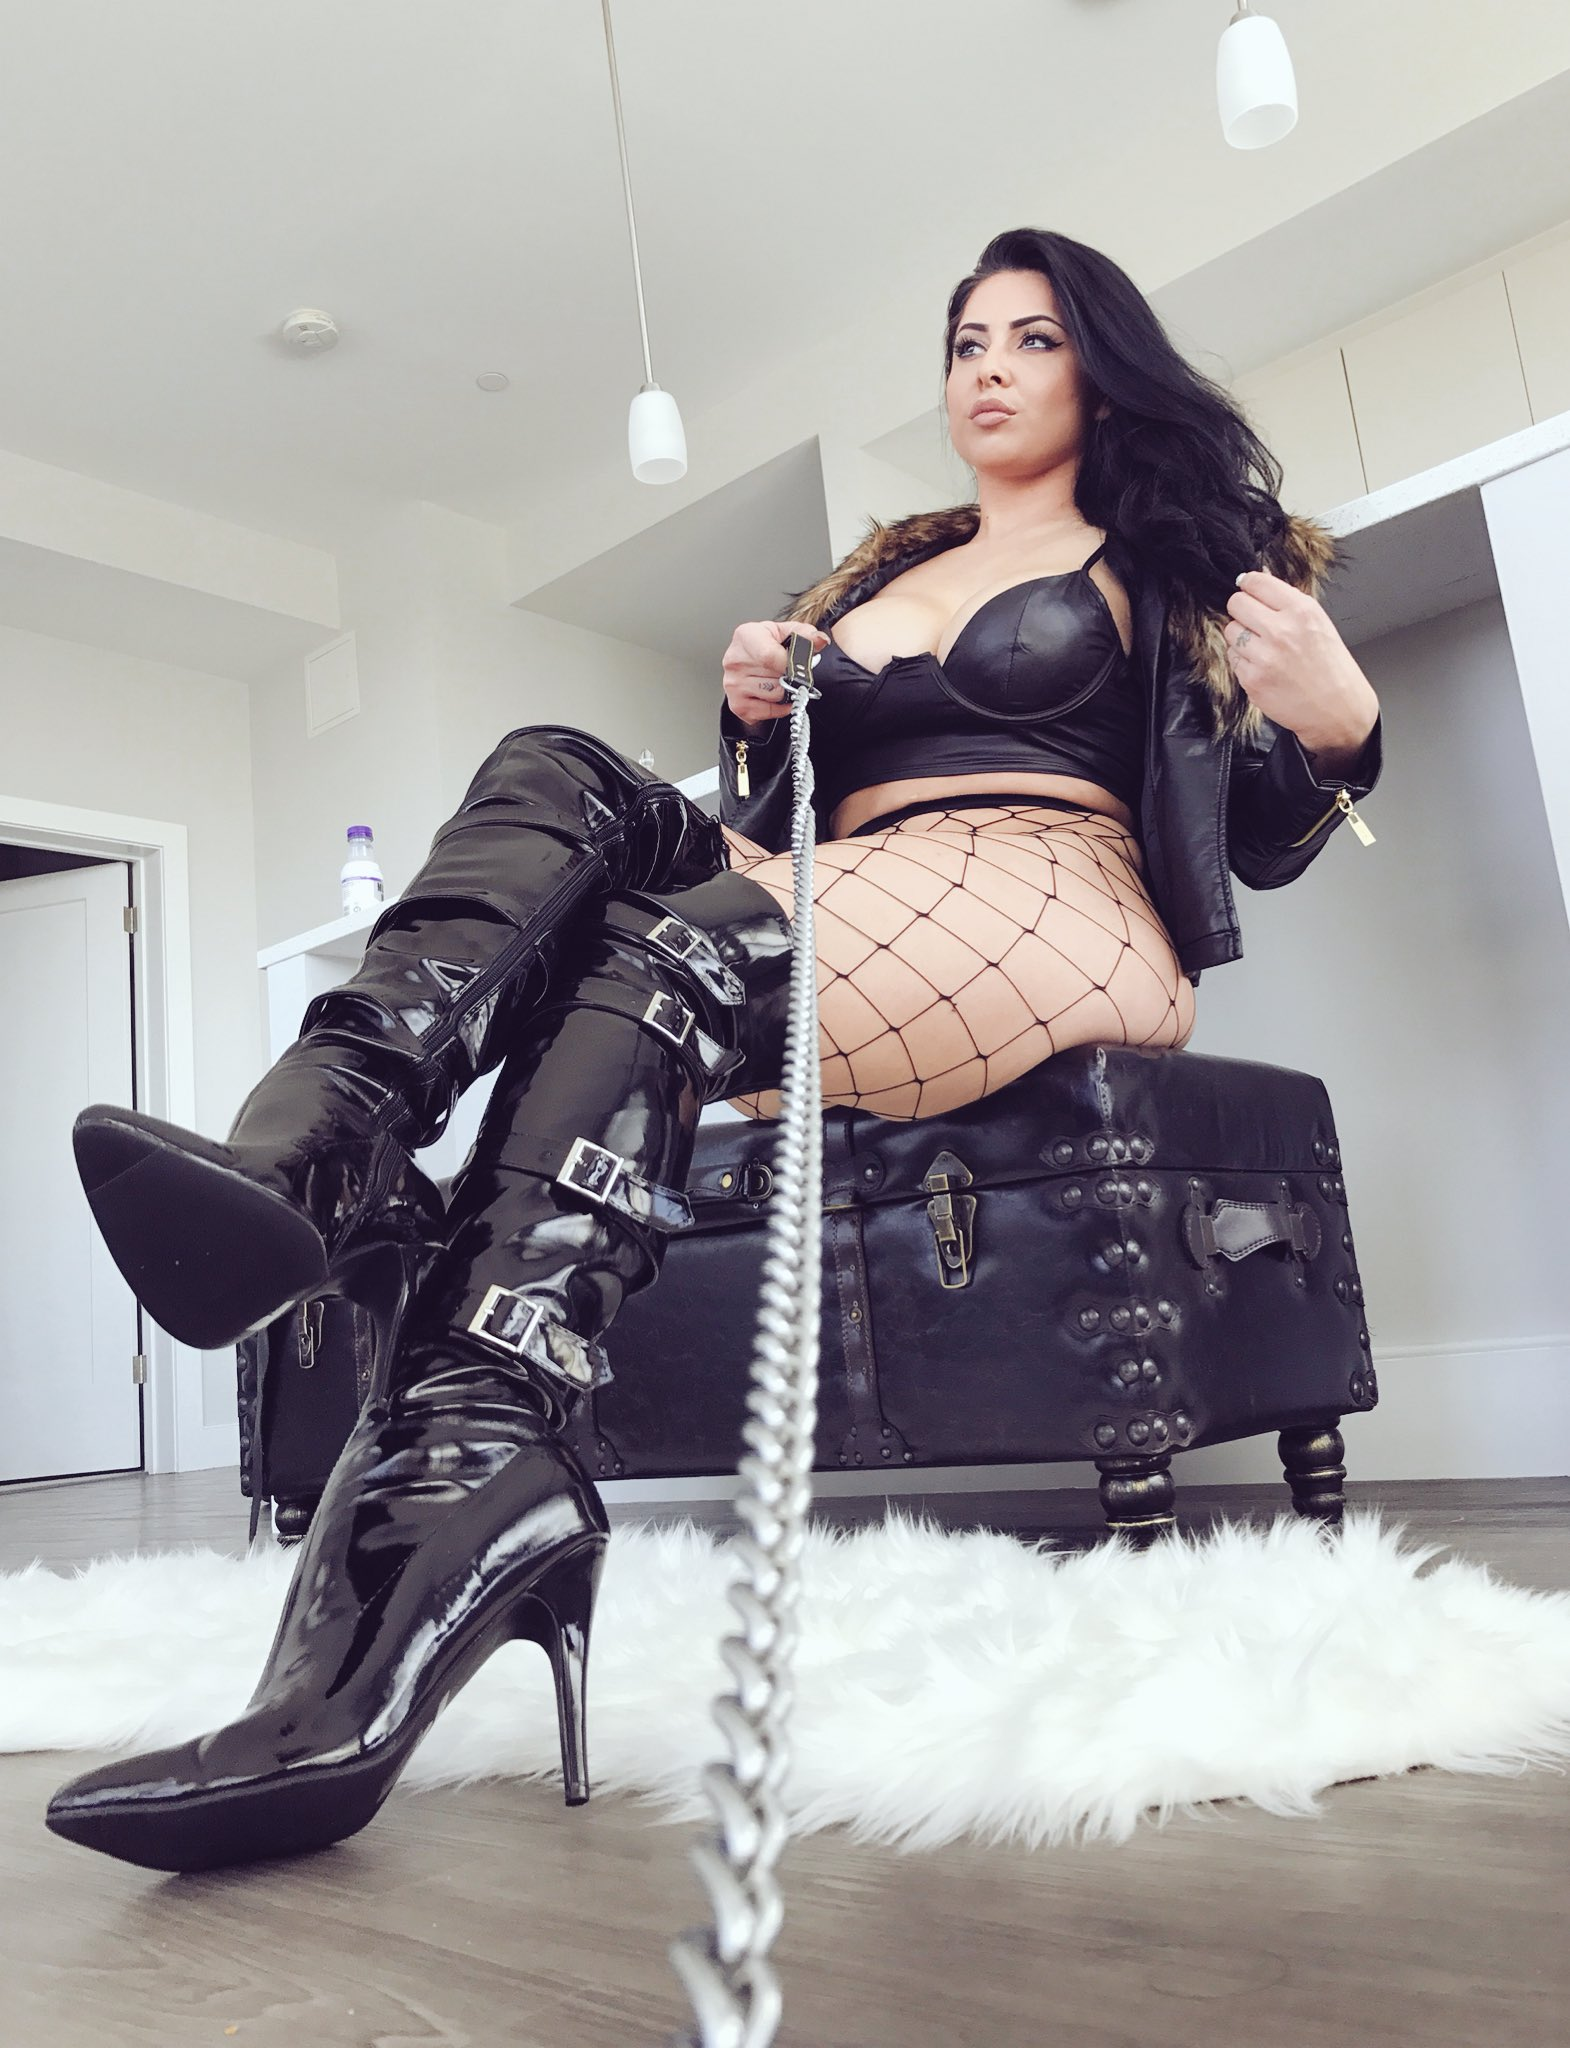 Boobs and boots